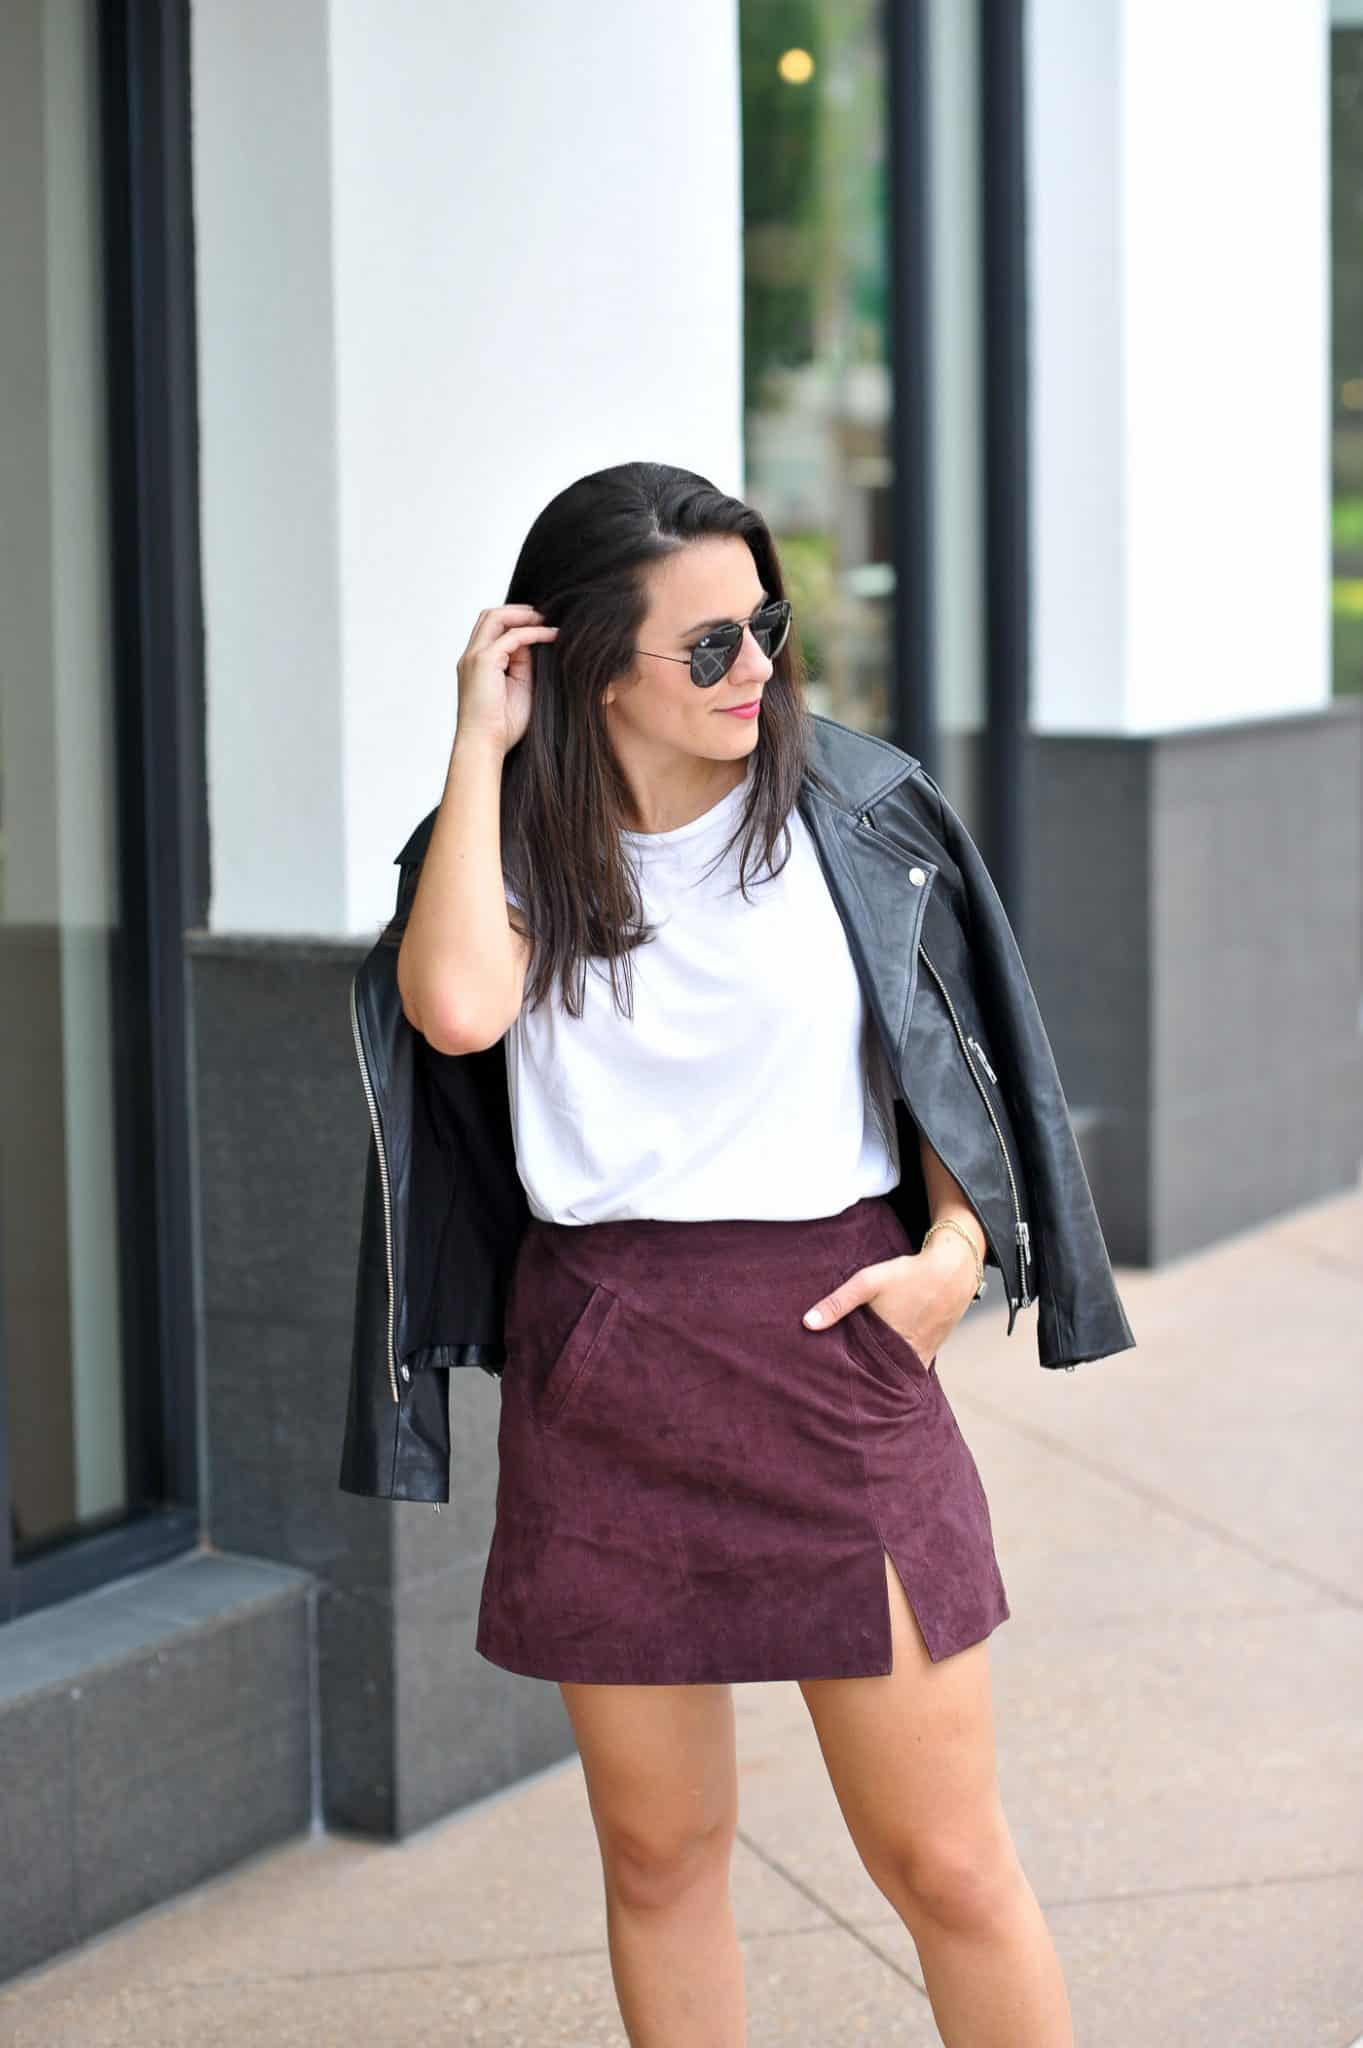 Styling Adidas For Fall With A Mini Skirt, Adidas outfit ideas, the best white tee - My Style Vita @mystylevita